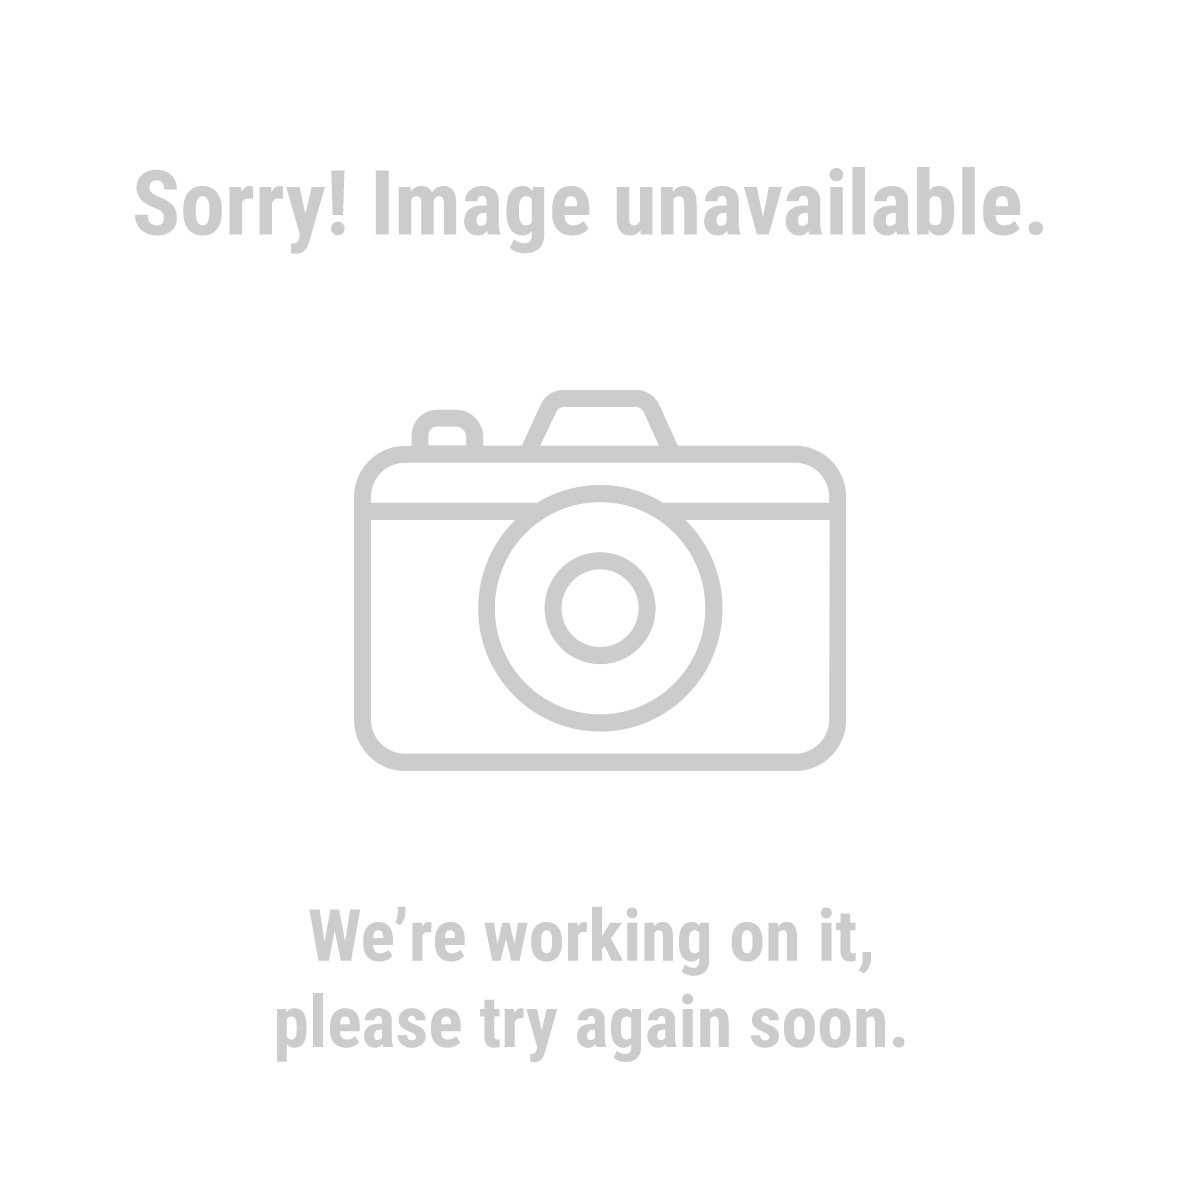 Western Safety 95472 Yellow Lens Safety Glasses